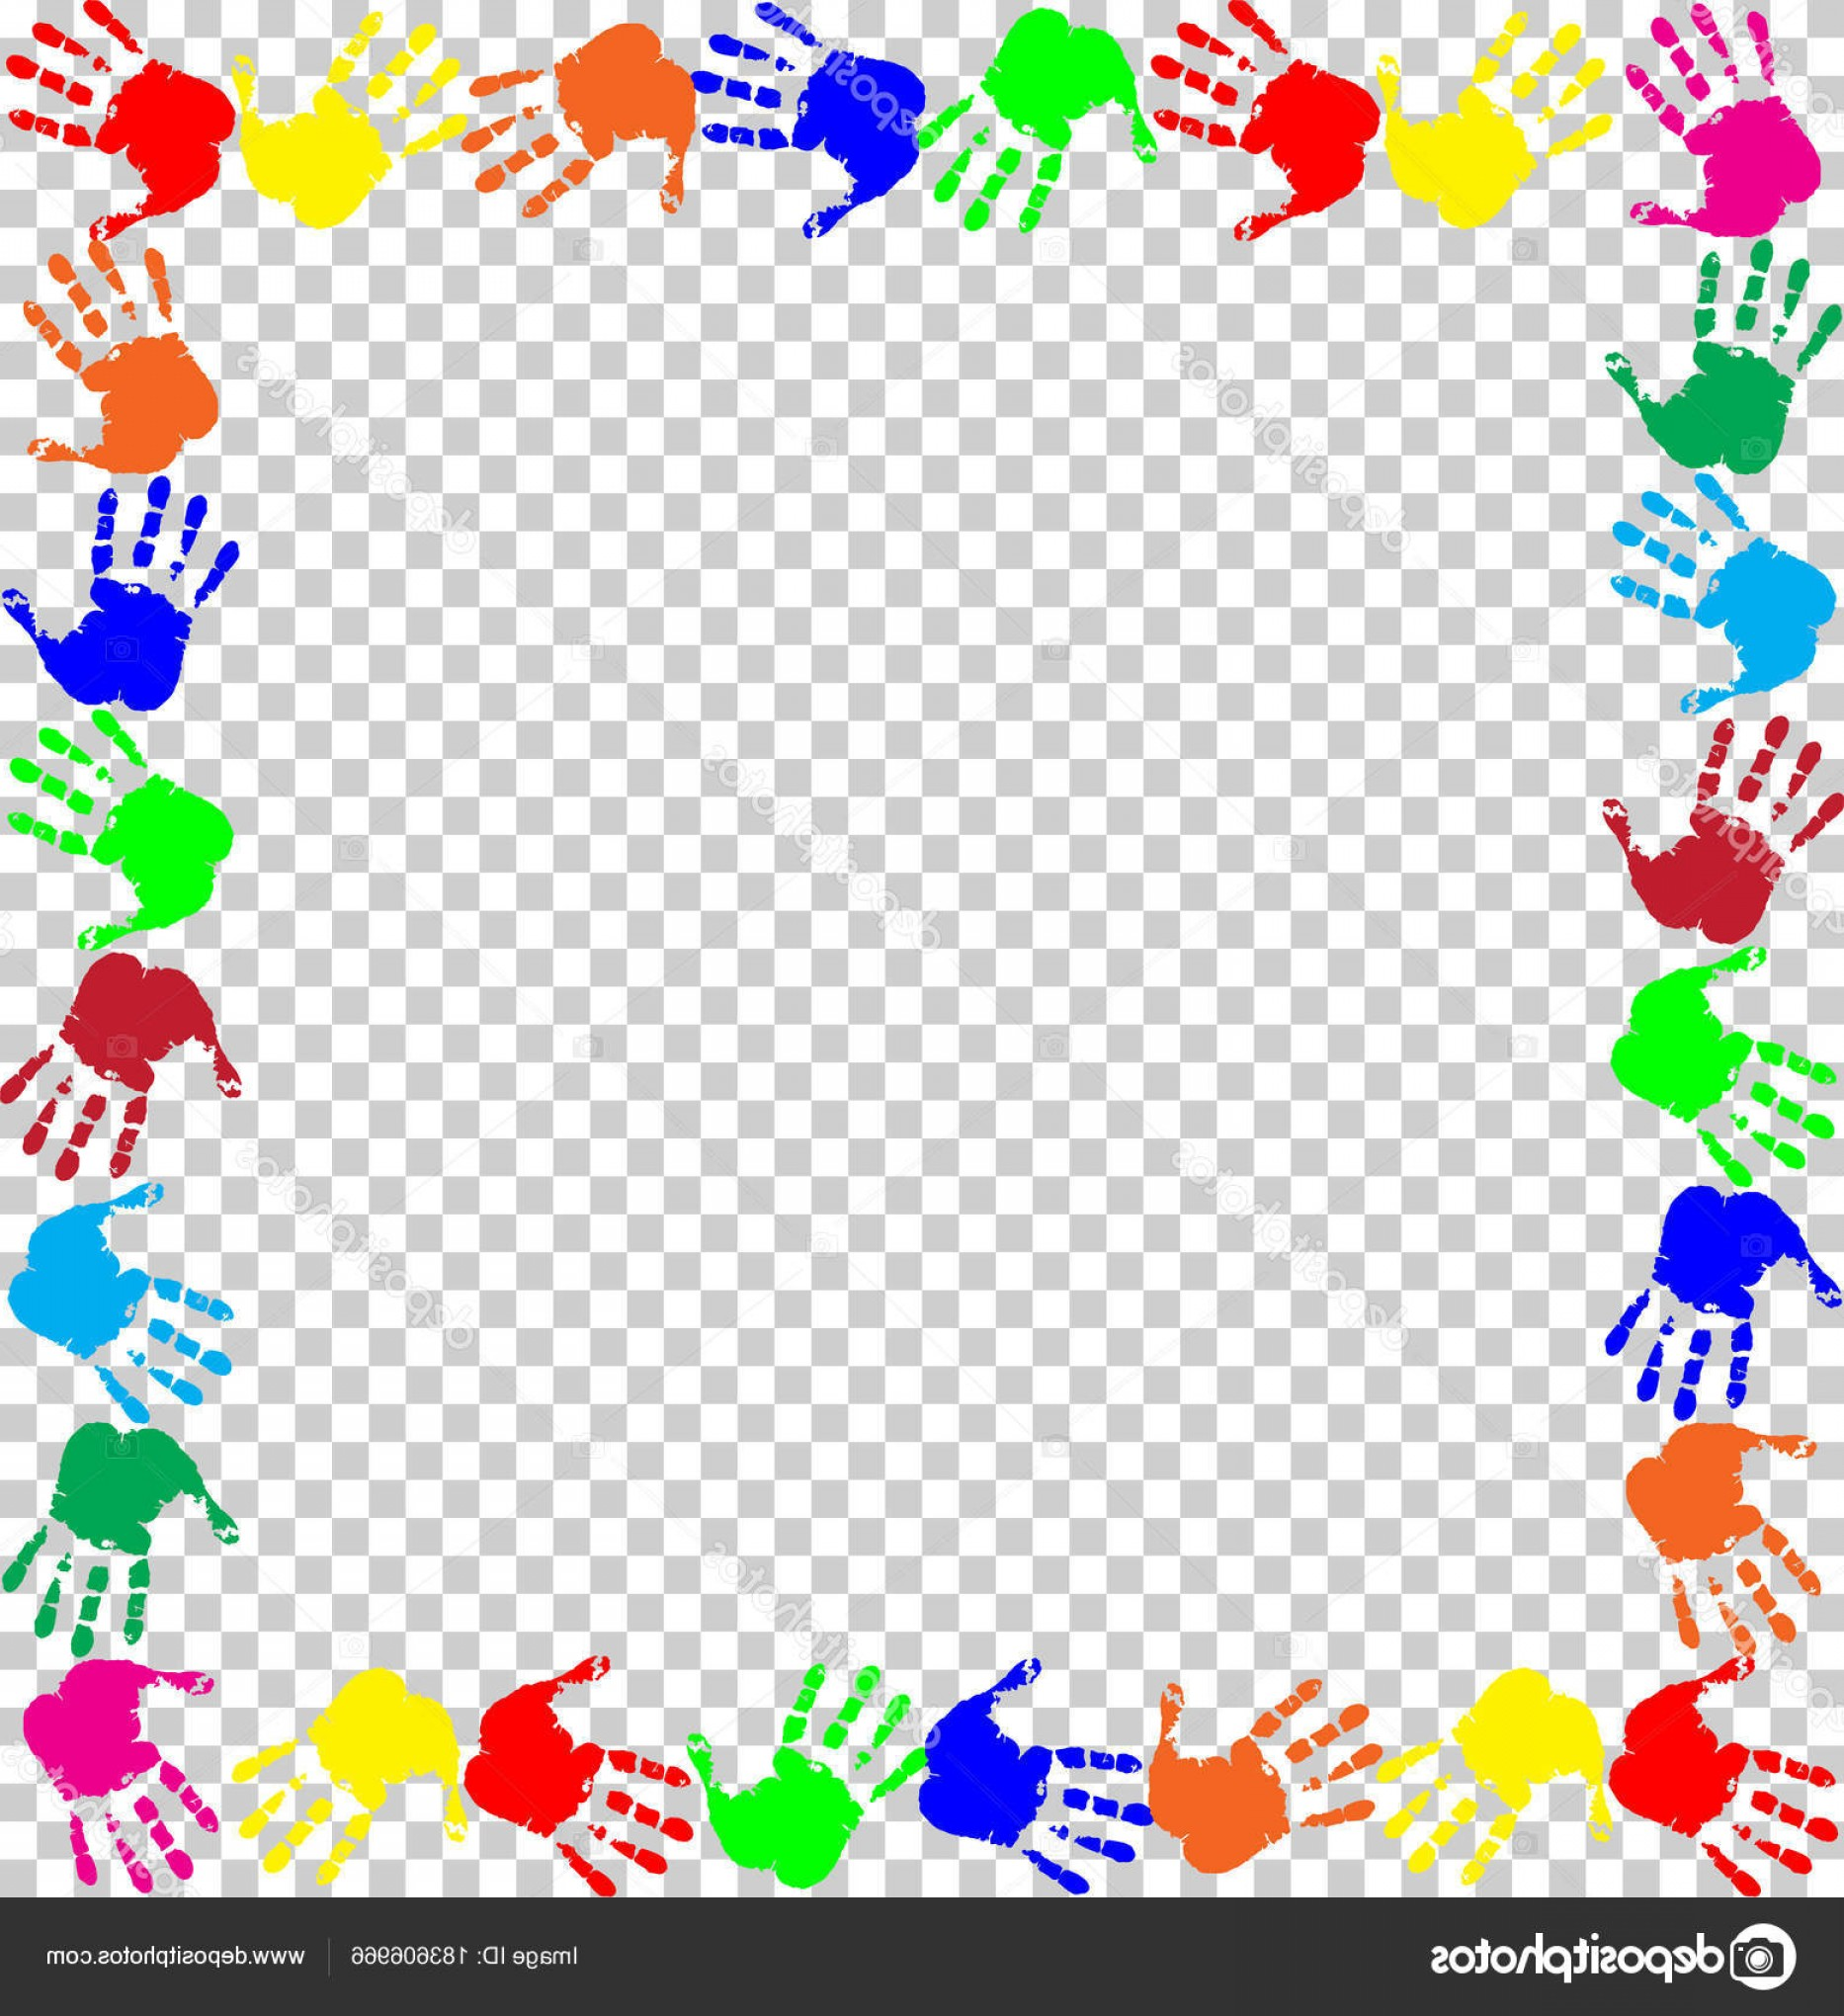 Hand Prints Vector Transparent Background: Stock Illustration Rainbow Frame With Multicolored Handprints